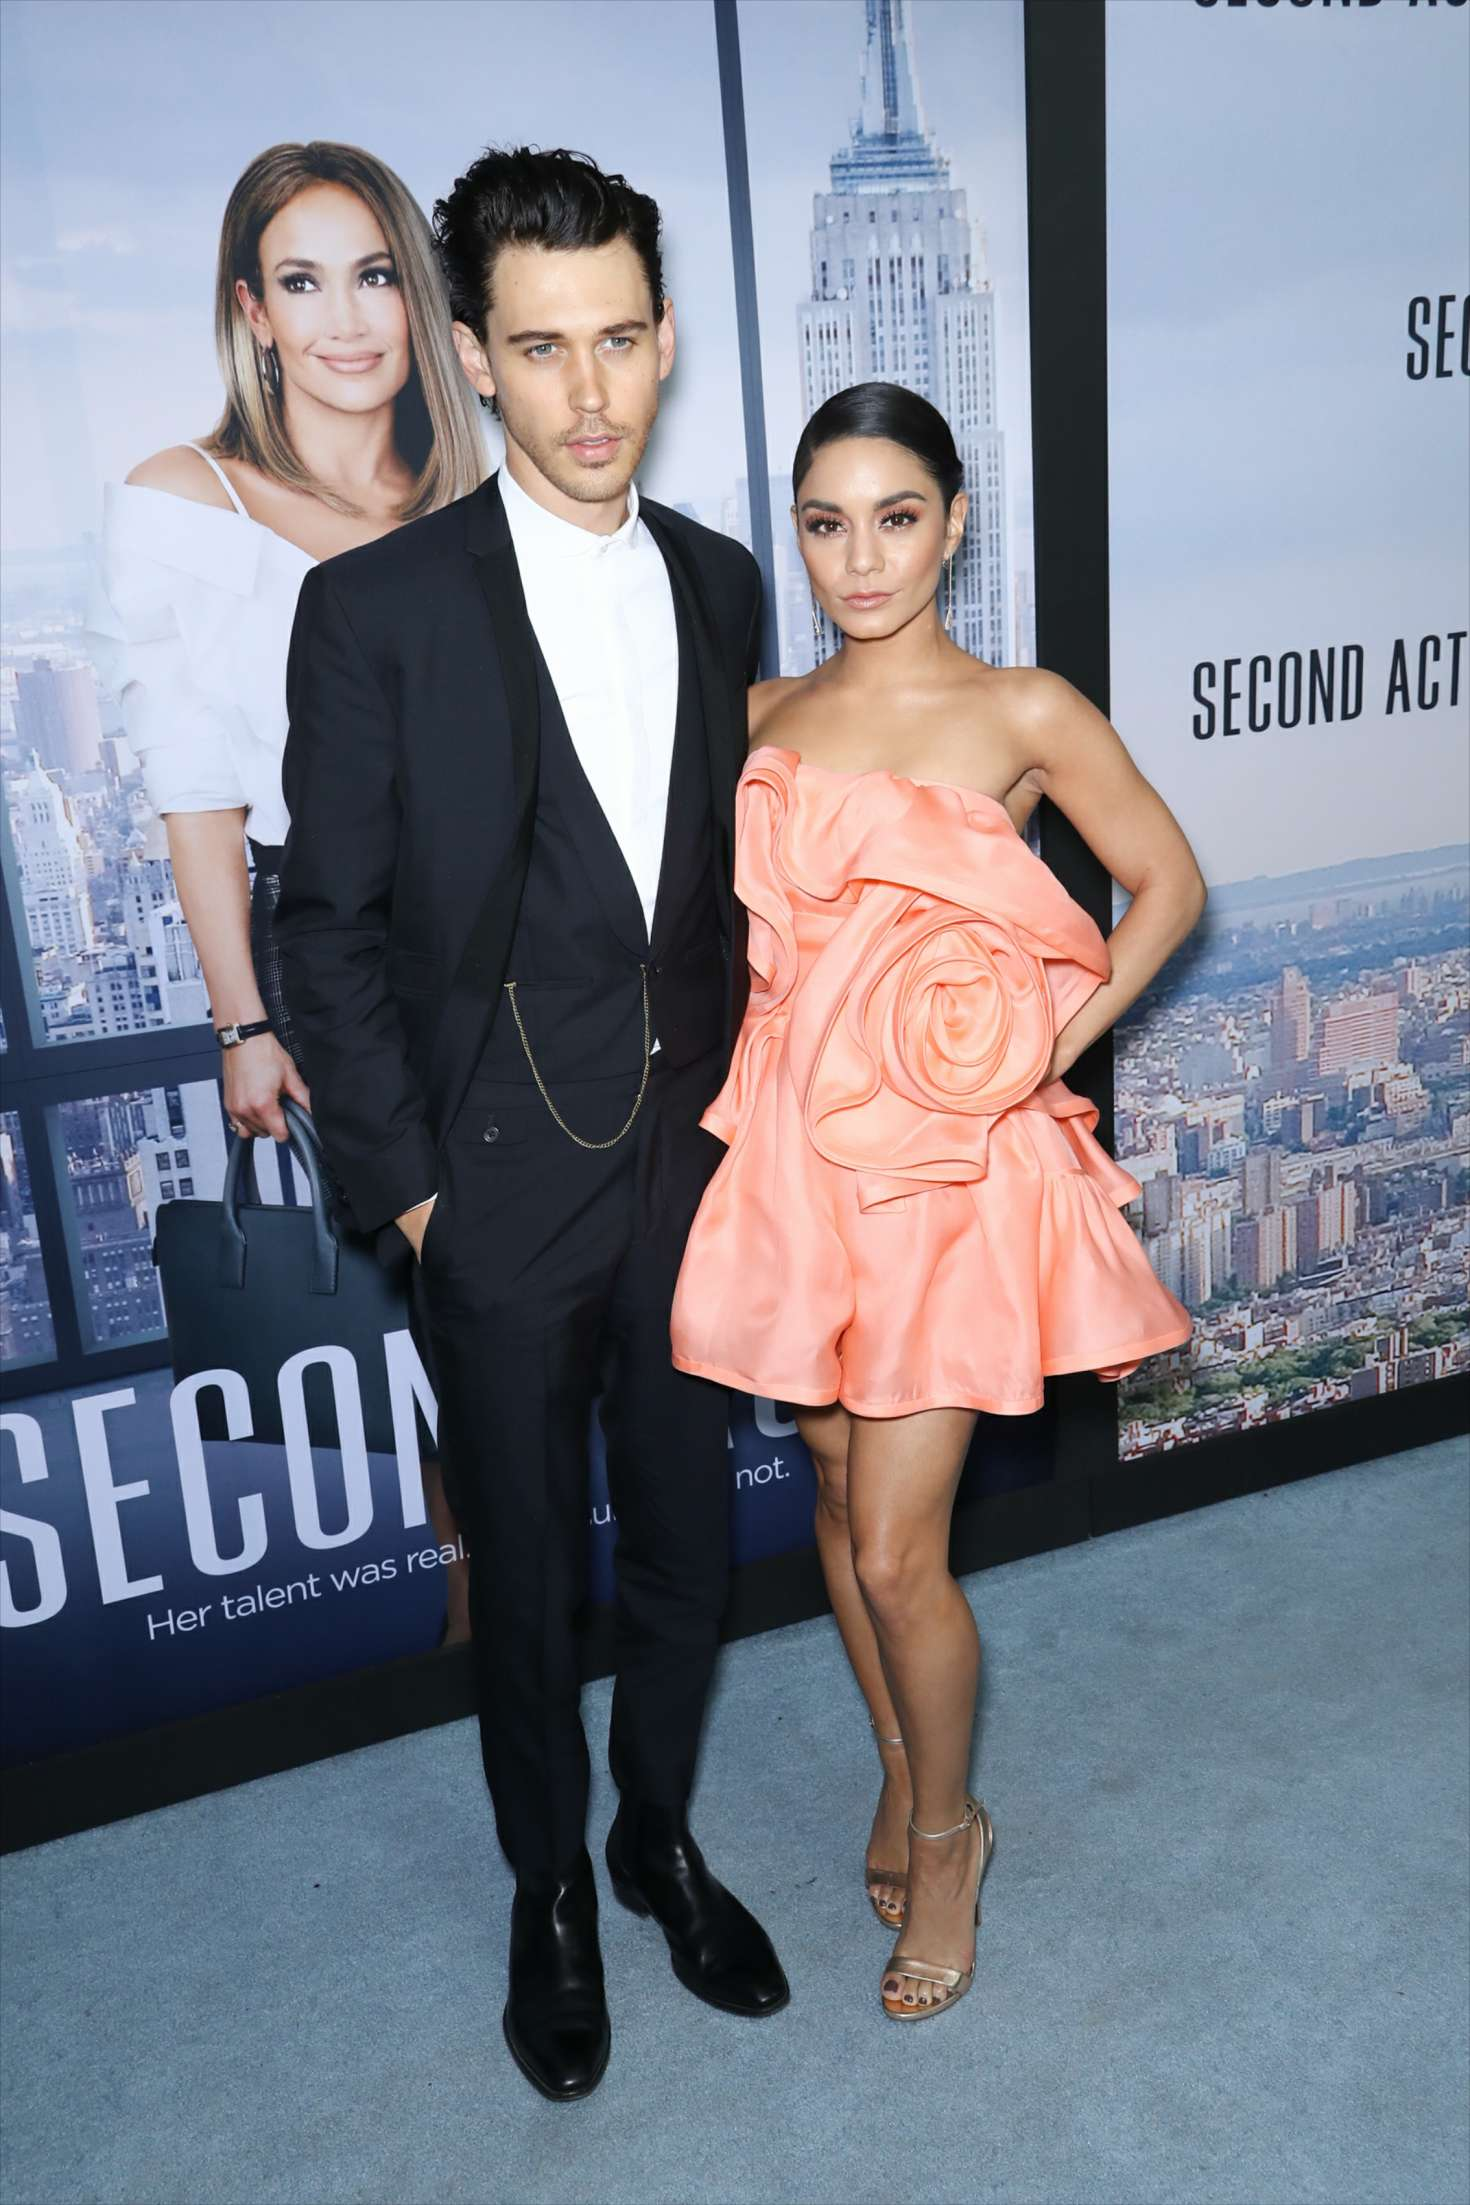 Vanessa Hudgens 2018 : Vanessa Hudgens: Second Act Premiere in NYC -07